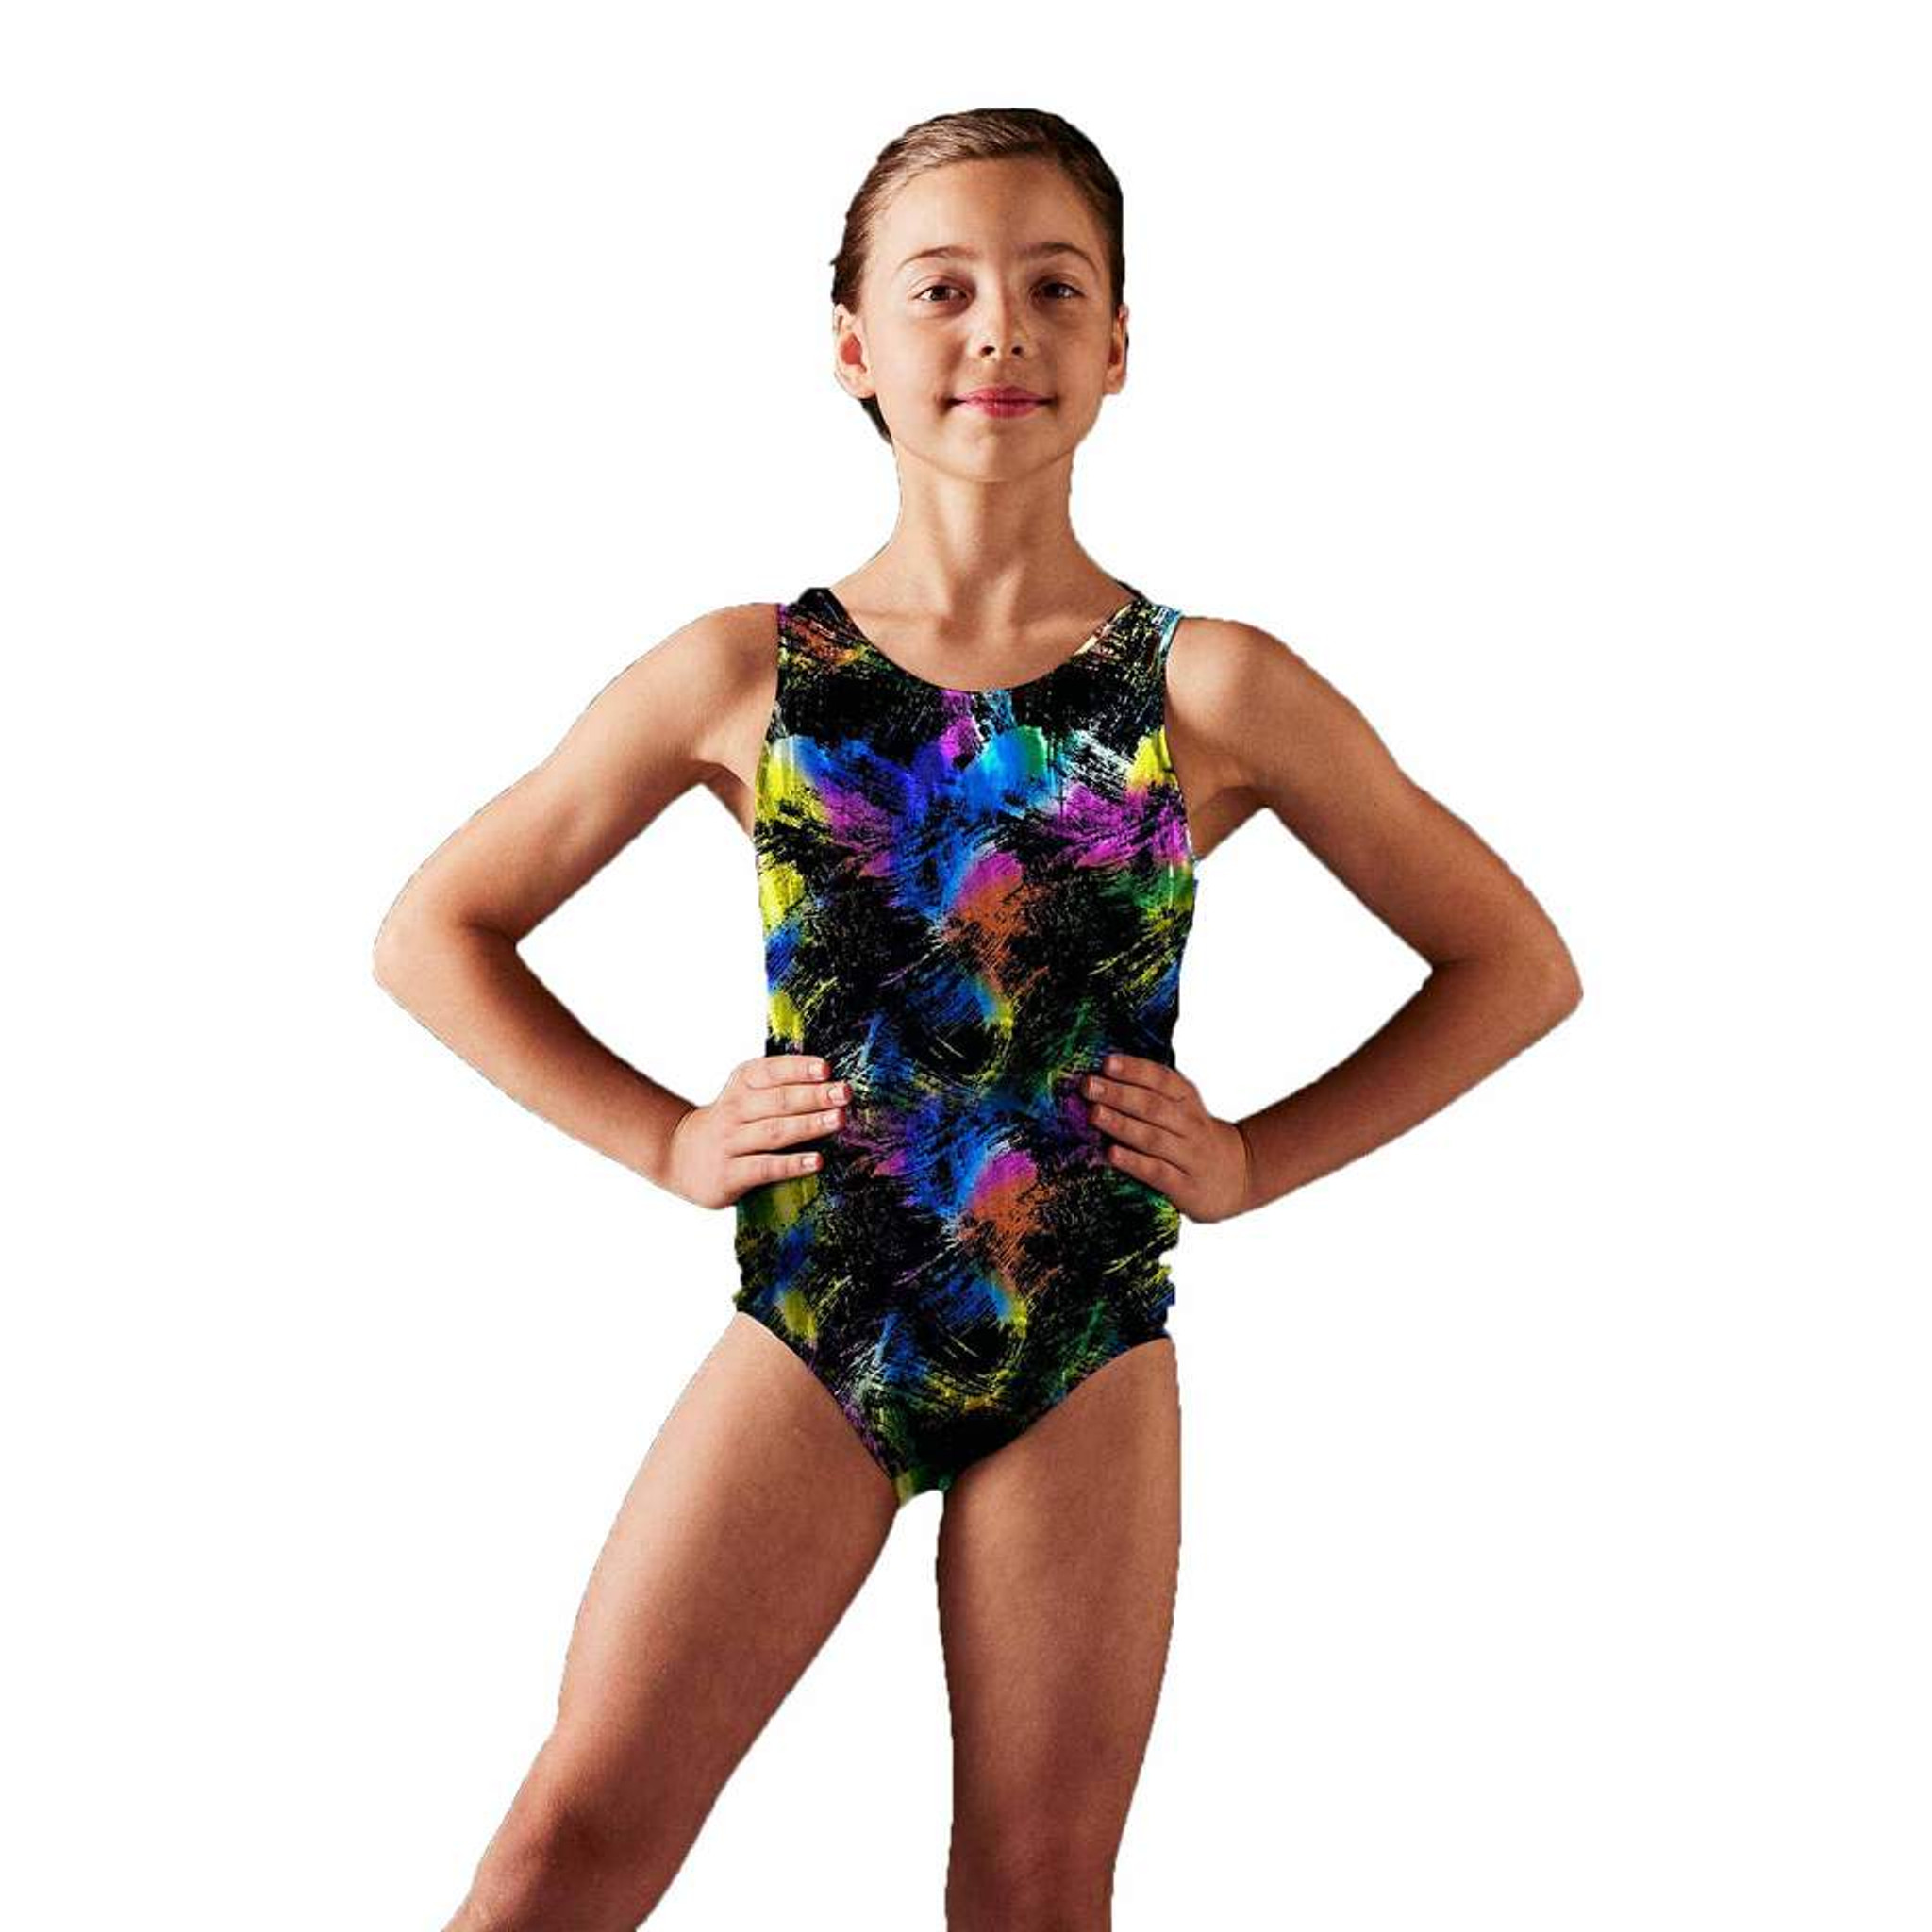 Zombie Gymnast Halloween Costume.Bloch Gymnastics Fireworks Foil Girls Tank Leotard